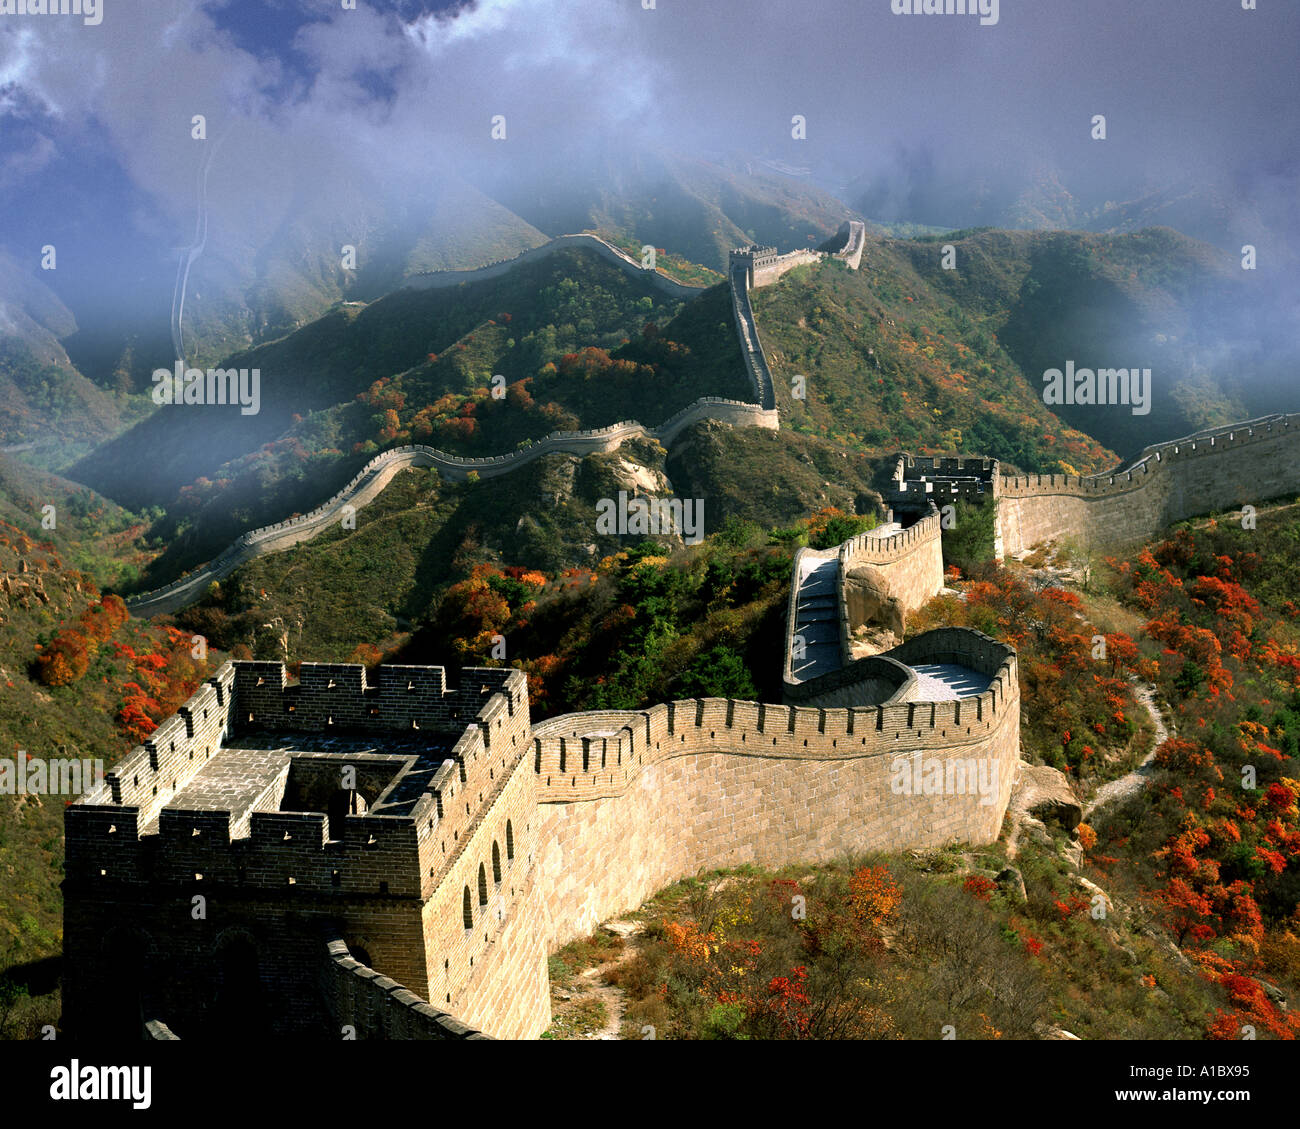 CN - NORTHERN CHINA: The Great Wall - Stock Image